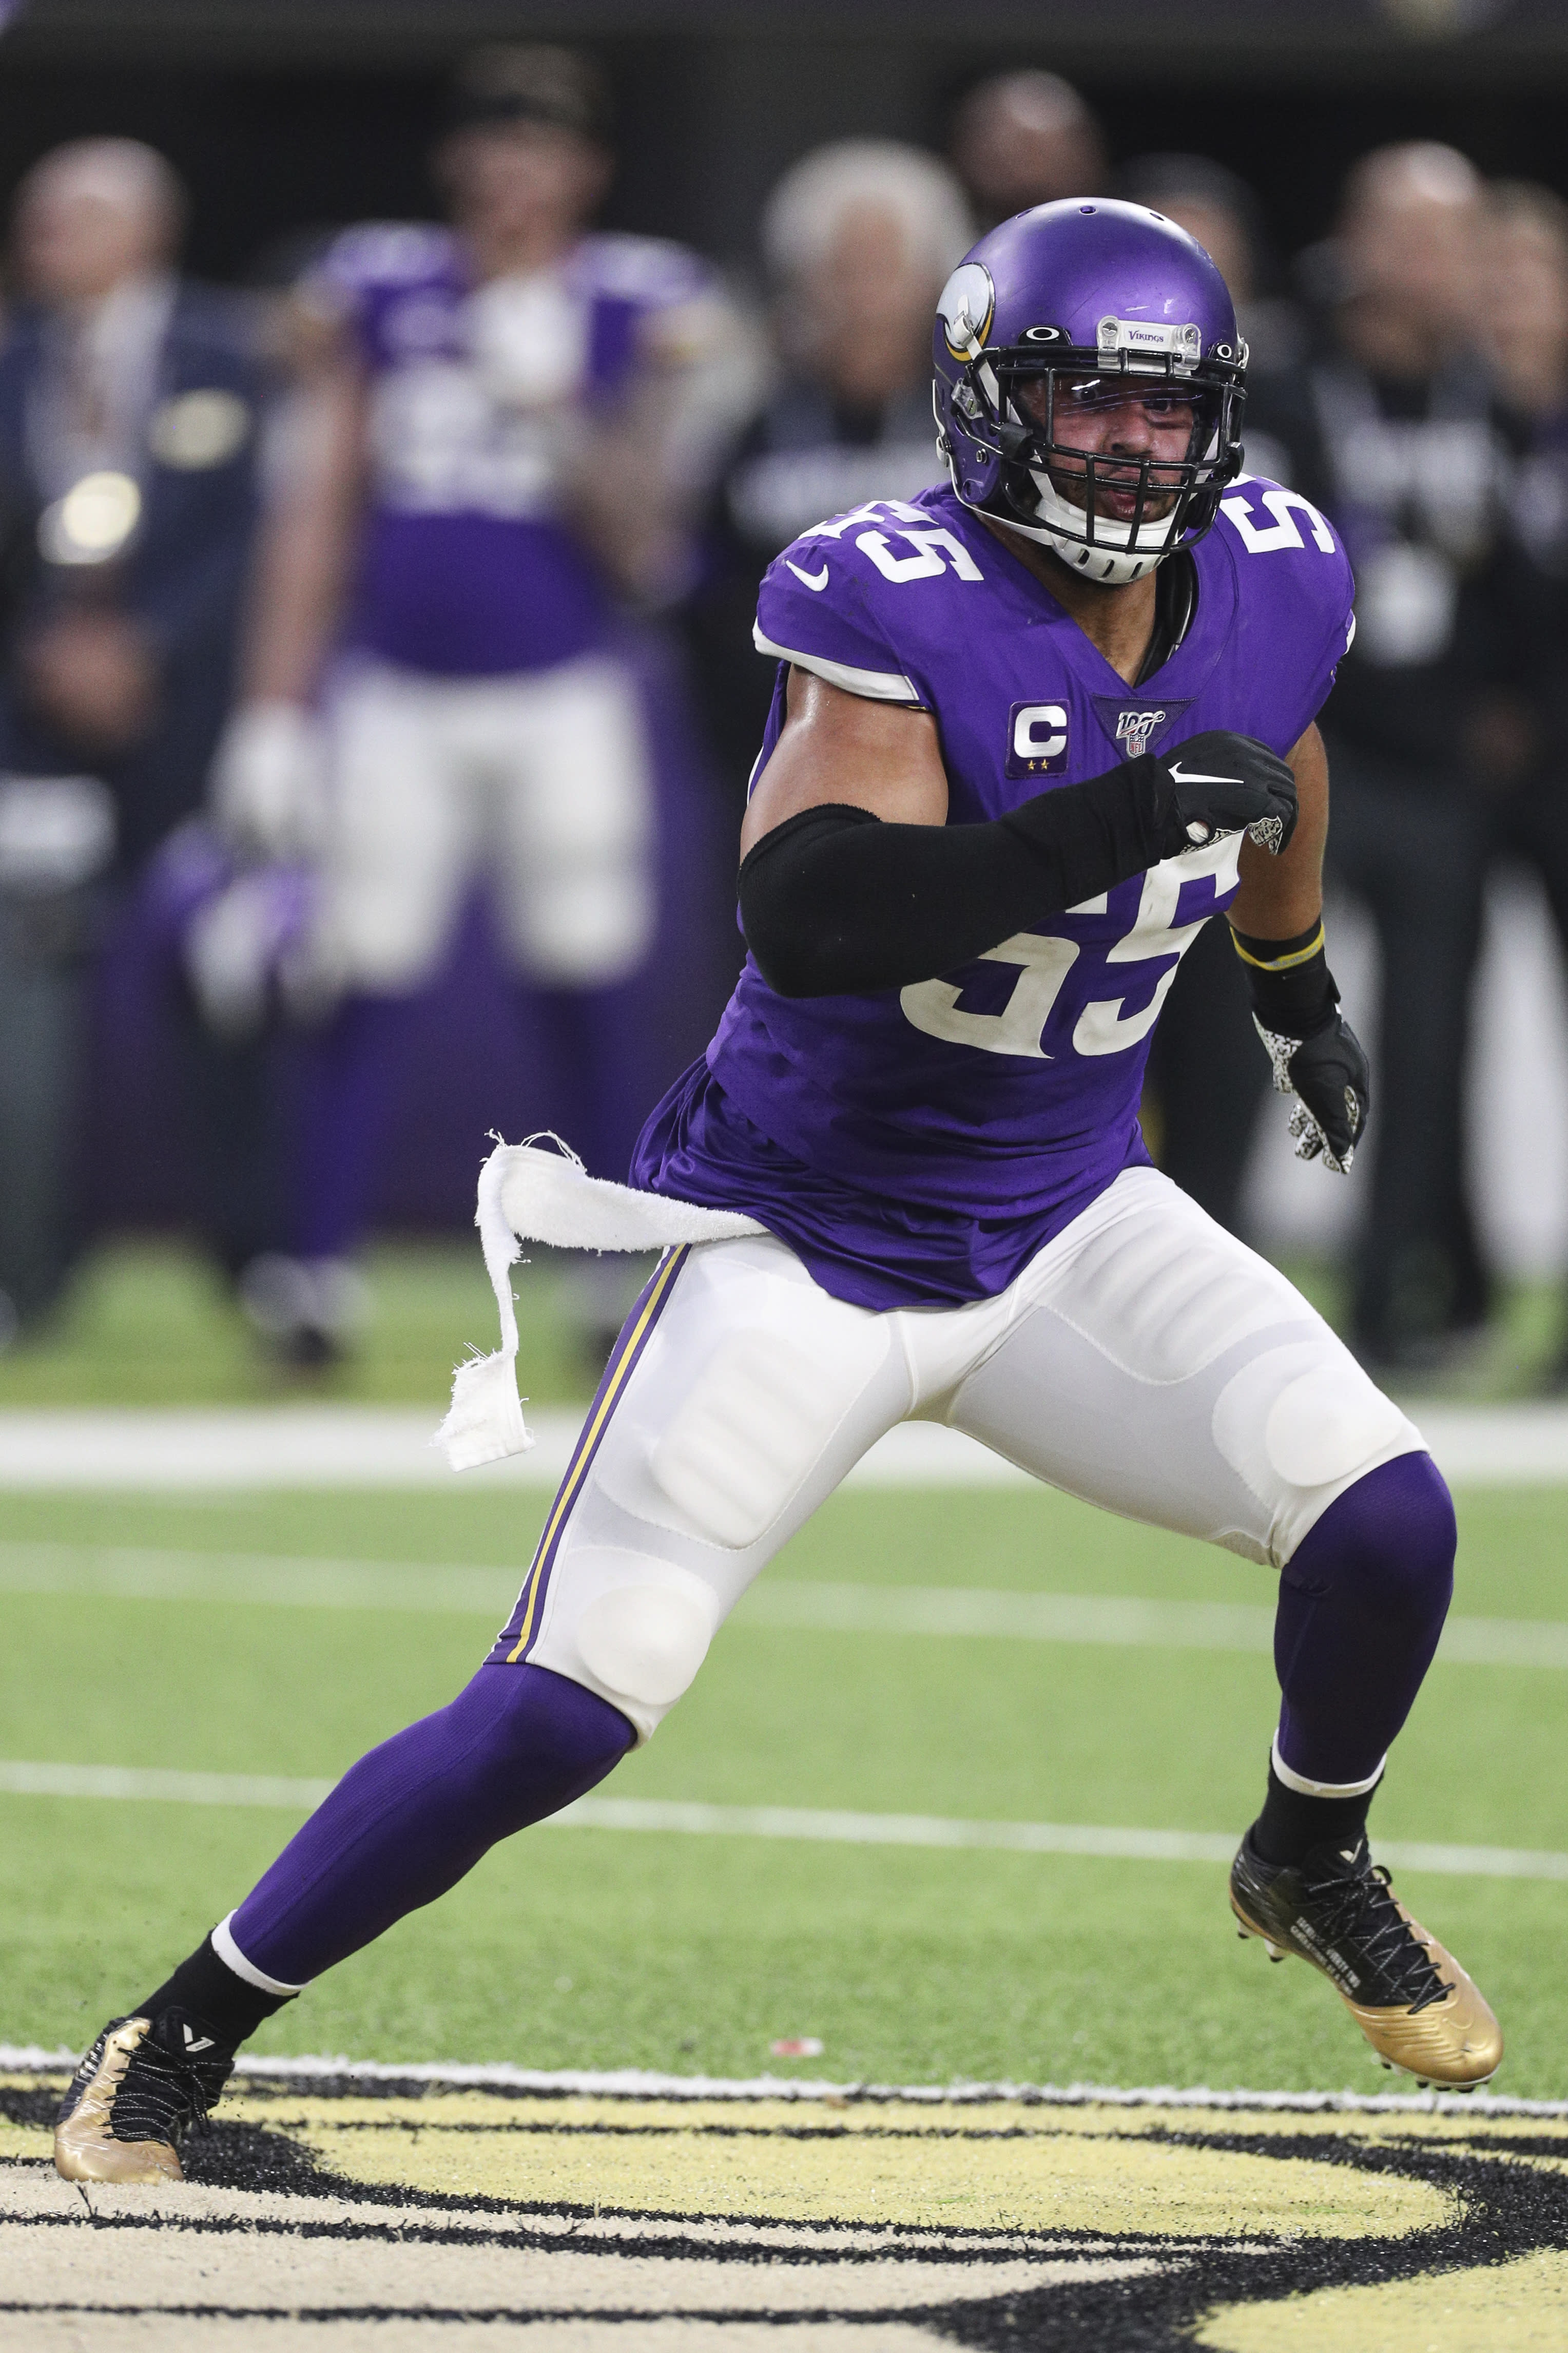 Minnesota Vikings linebacker Anthony Barr (55) takes a defensive position during an NFL game against the Detroit Lions, Sunday, Dec. 8, 2019 in Minneapolis. The Vikings defeated the Lions 20-7. (Margaret Bowles via AP)